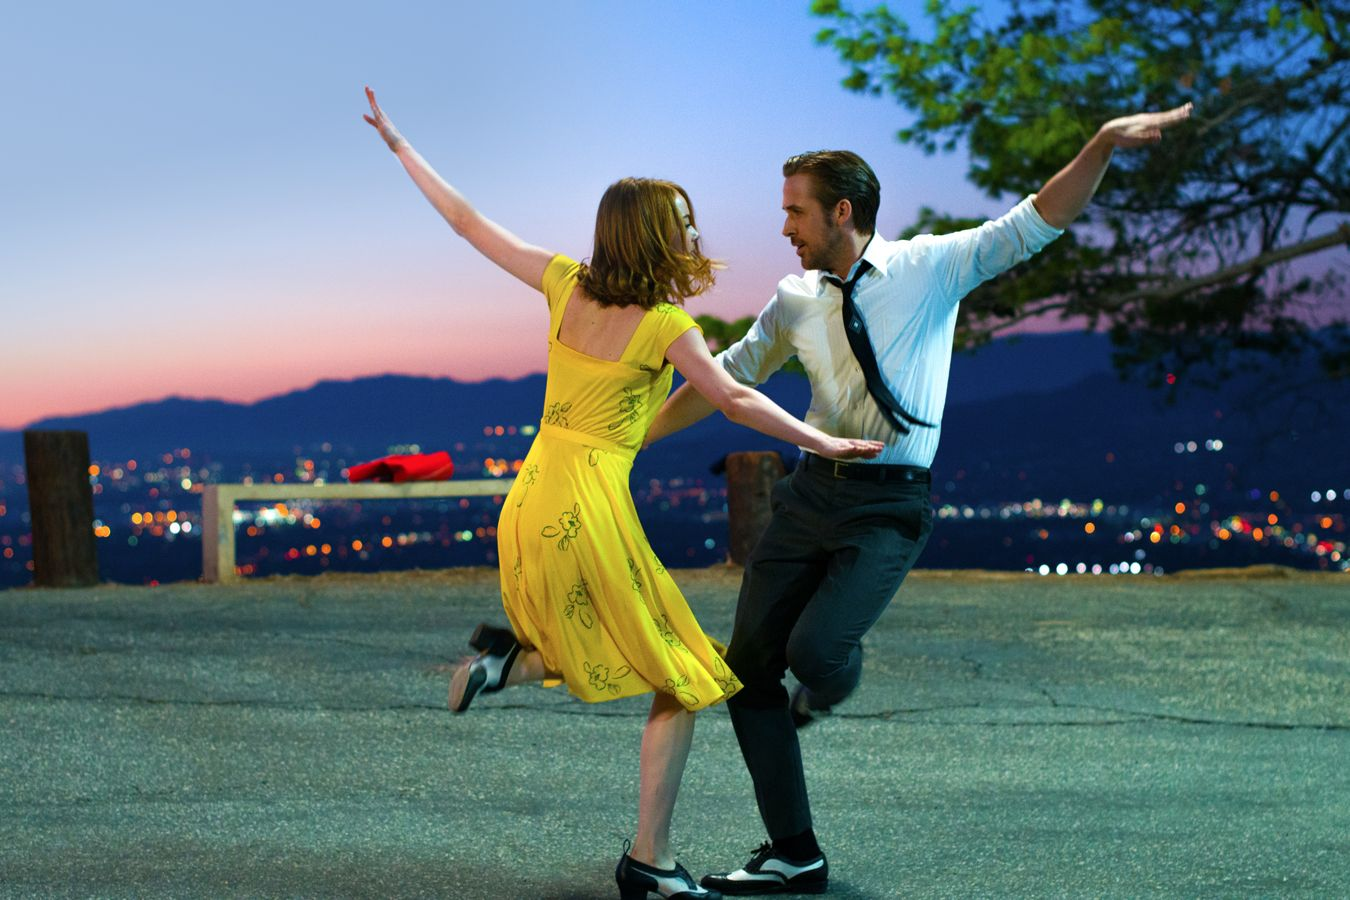 La La Land Bertahan di Posisi 2 Box Office